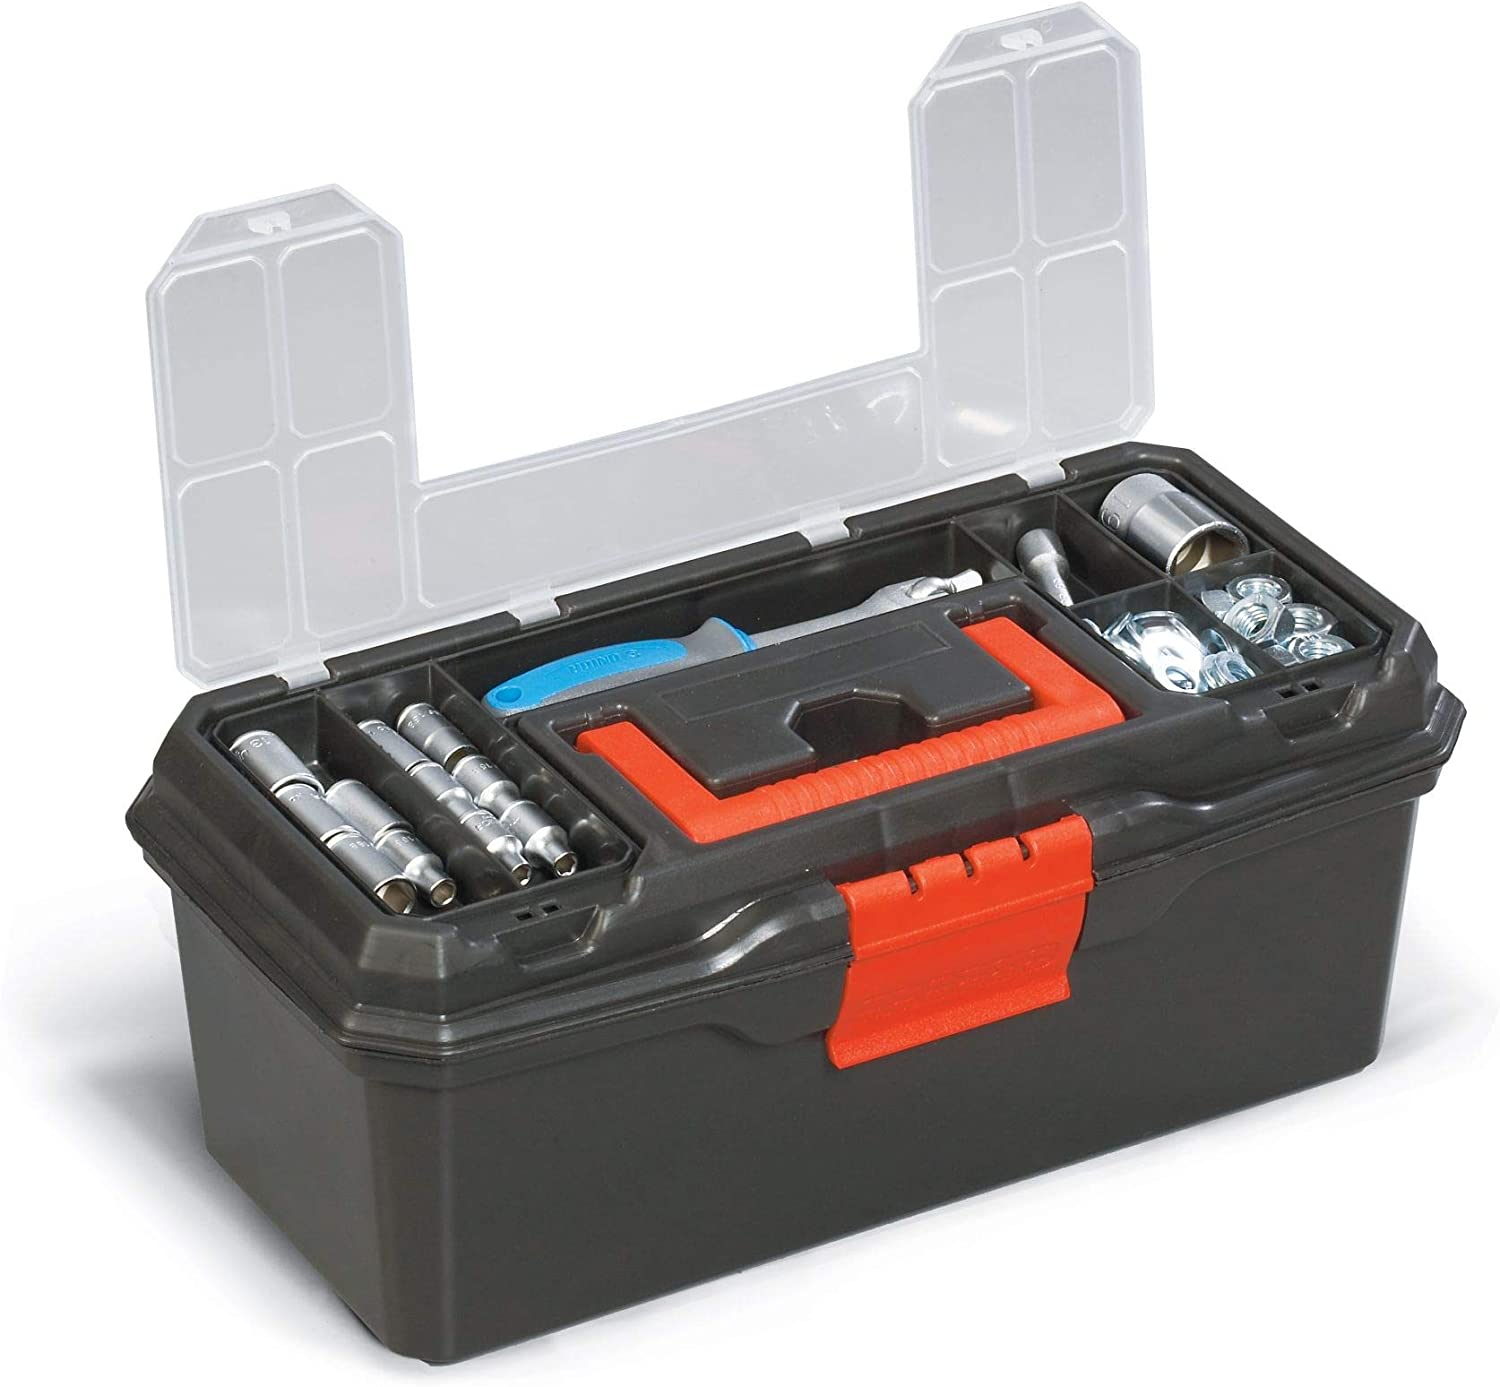 FINDER QX194123 Tool Box 13-Inch Consumer Storage Toolbox